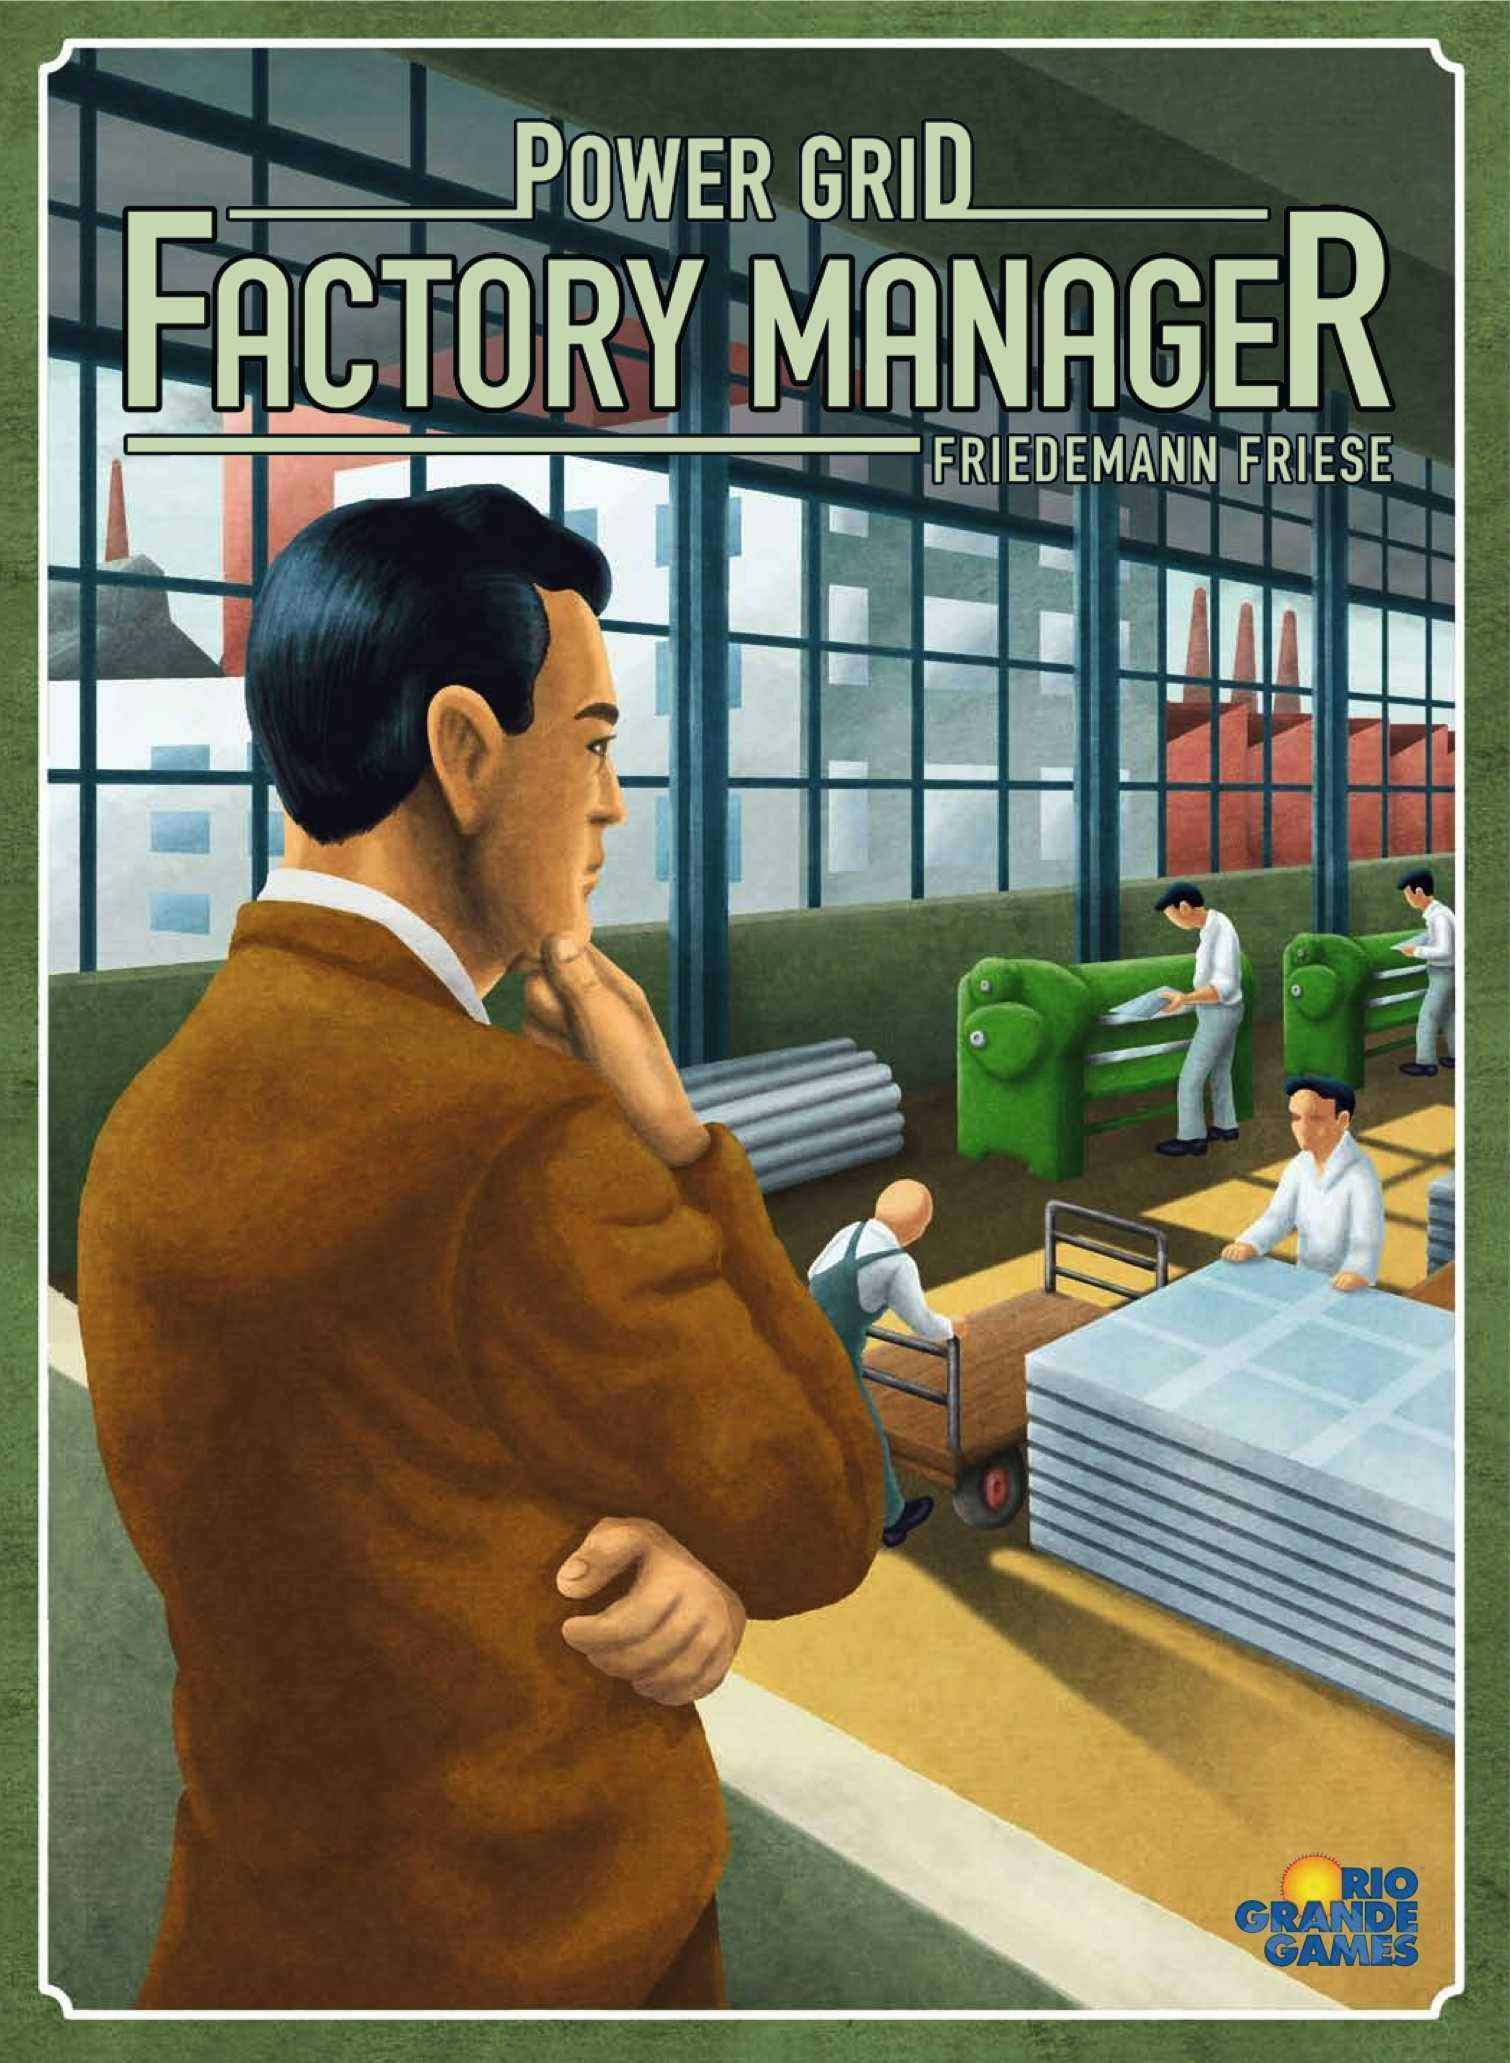 Power Grid: Factory Manager